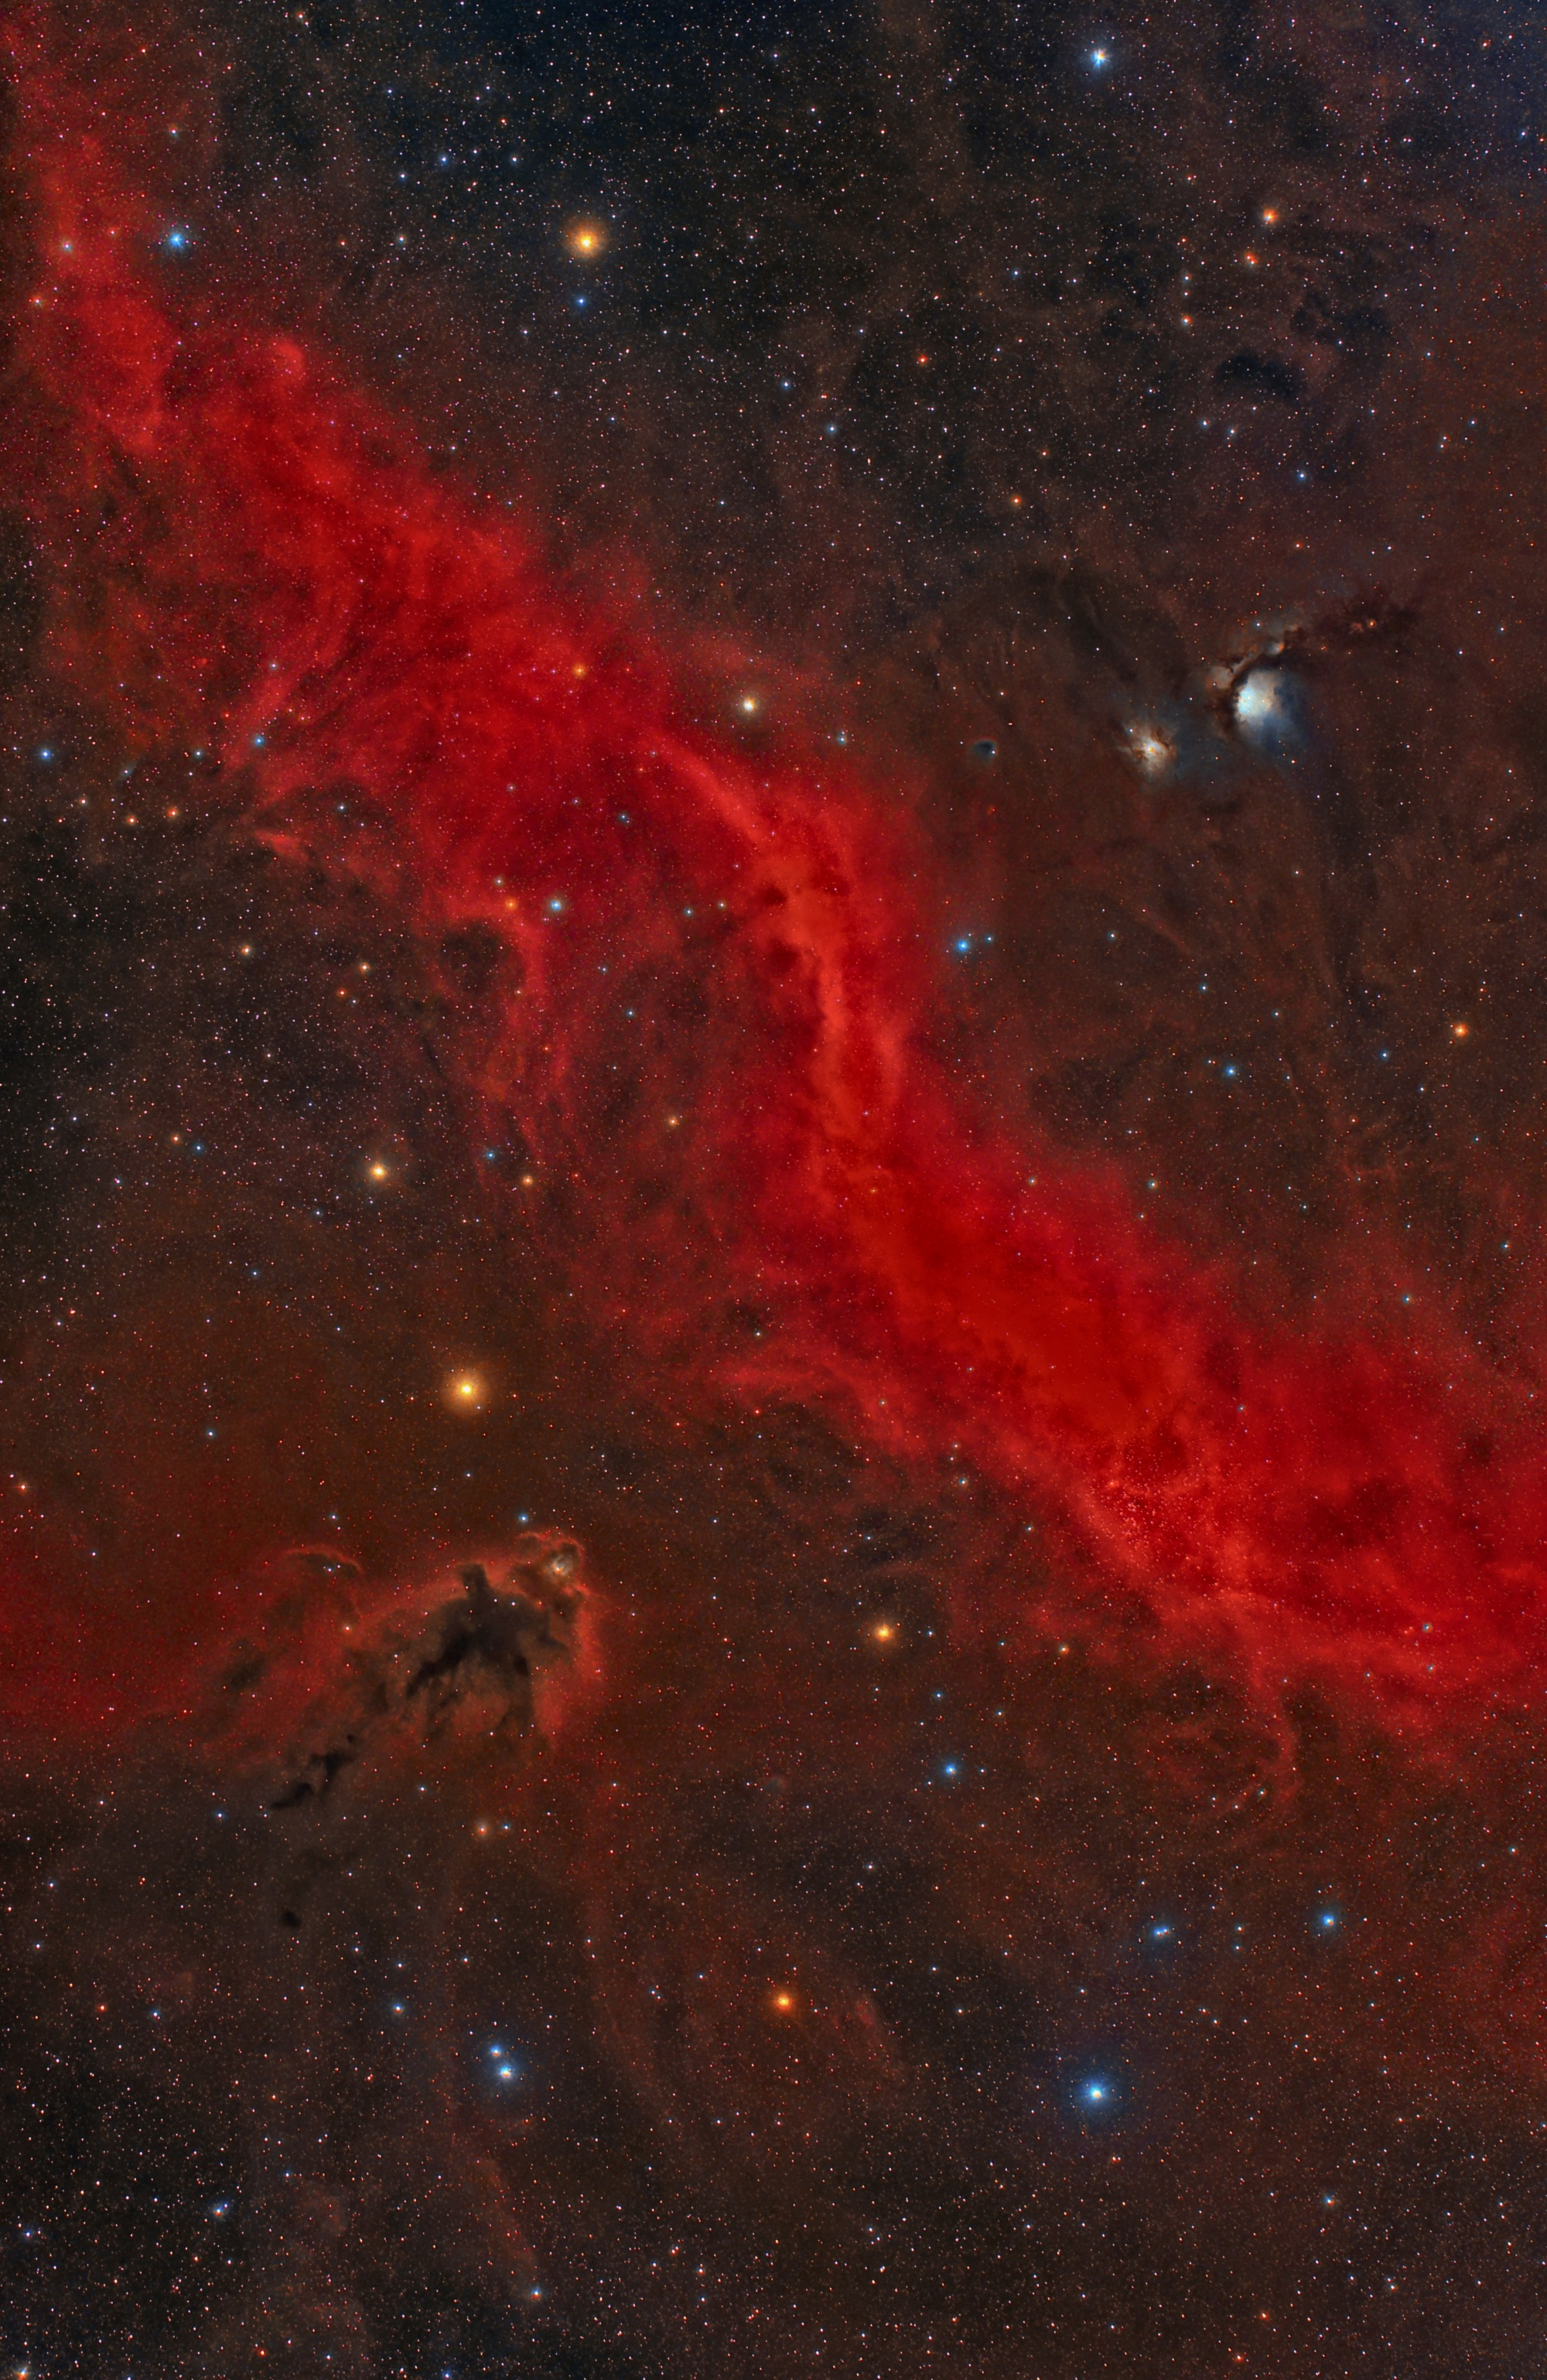 Insight Investment Astronomy Photographer of the Year 2019 | Stars and Nebulae: Galactic Artery by Raul Villaverde Fraile